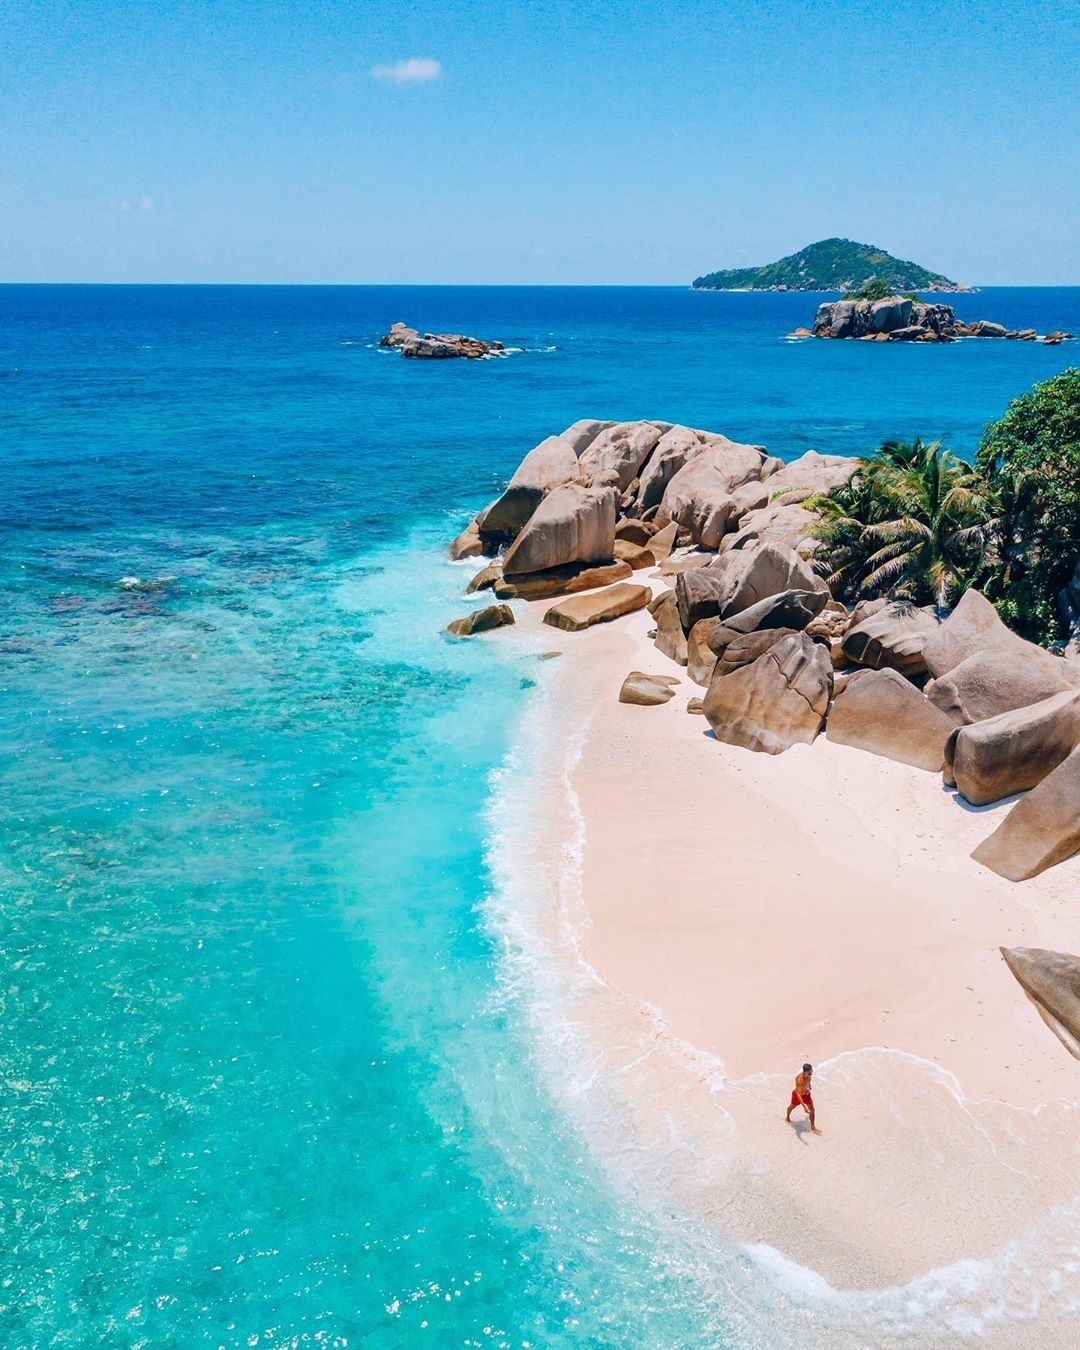 Desert Island Beach: Now Discovering Cocos Island Seychelles With @andredemello